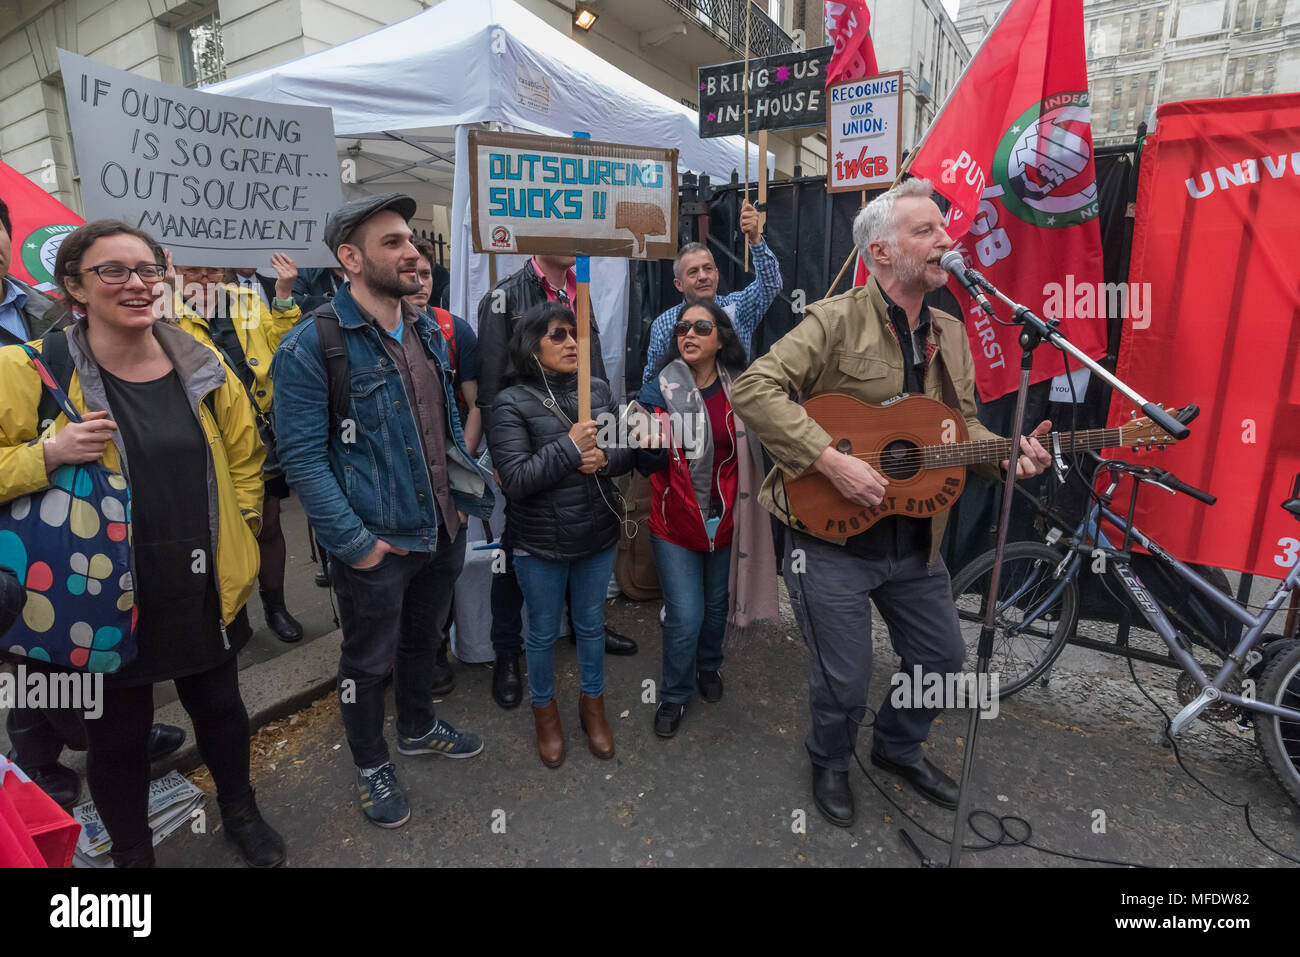 London, UK. 25th April 2018.Billy Bragg plays at the rally by workers, students and other trade unionists supporting over 100 cleaners, porters, security officers, receptionists, gardeners, post room staff and audiovisual staff in the Independent Workers Union of Great Britain - IWGB at the end of the first day of a two day strike at the University of London central administration. The workers, employed by various outsourcing companies are demanding to be directly employed by the University, and receive the same conditions and benefits as directly employed colleagues; outsourced workers receiv - Stock Image